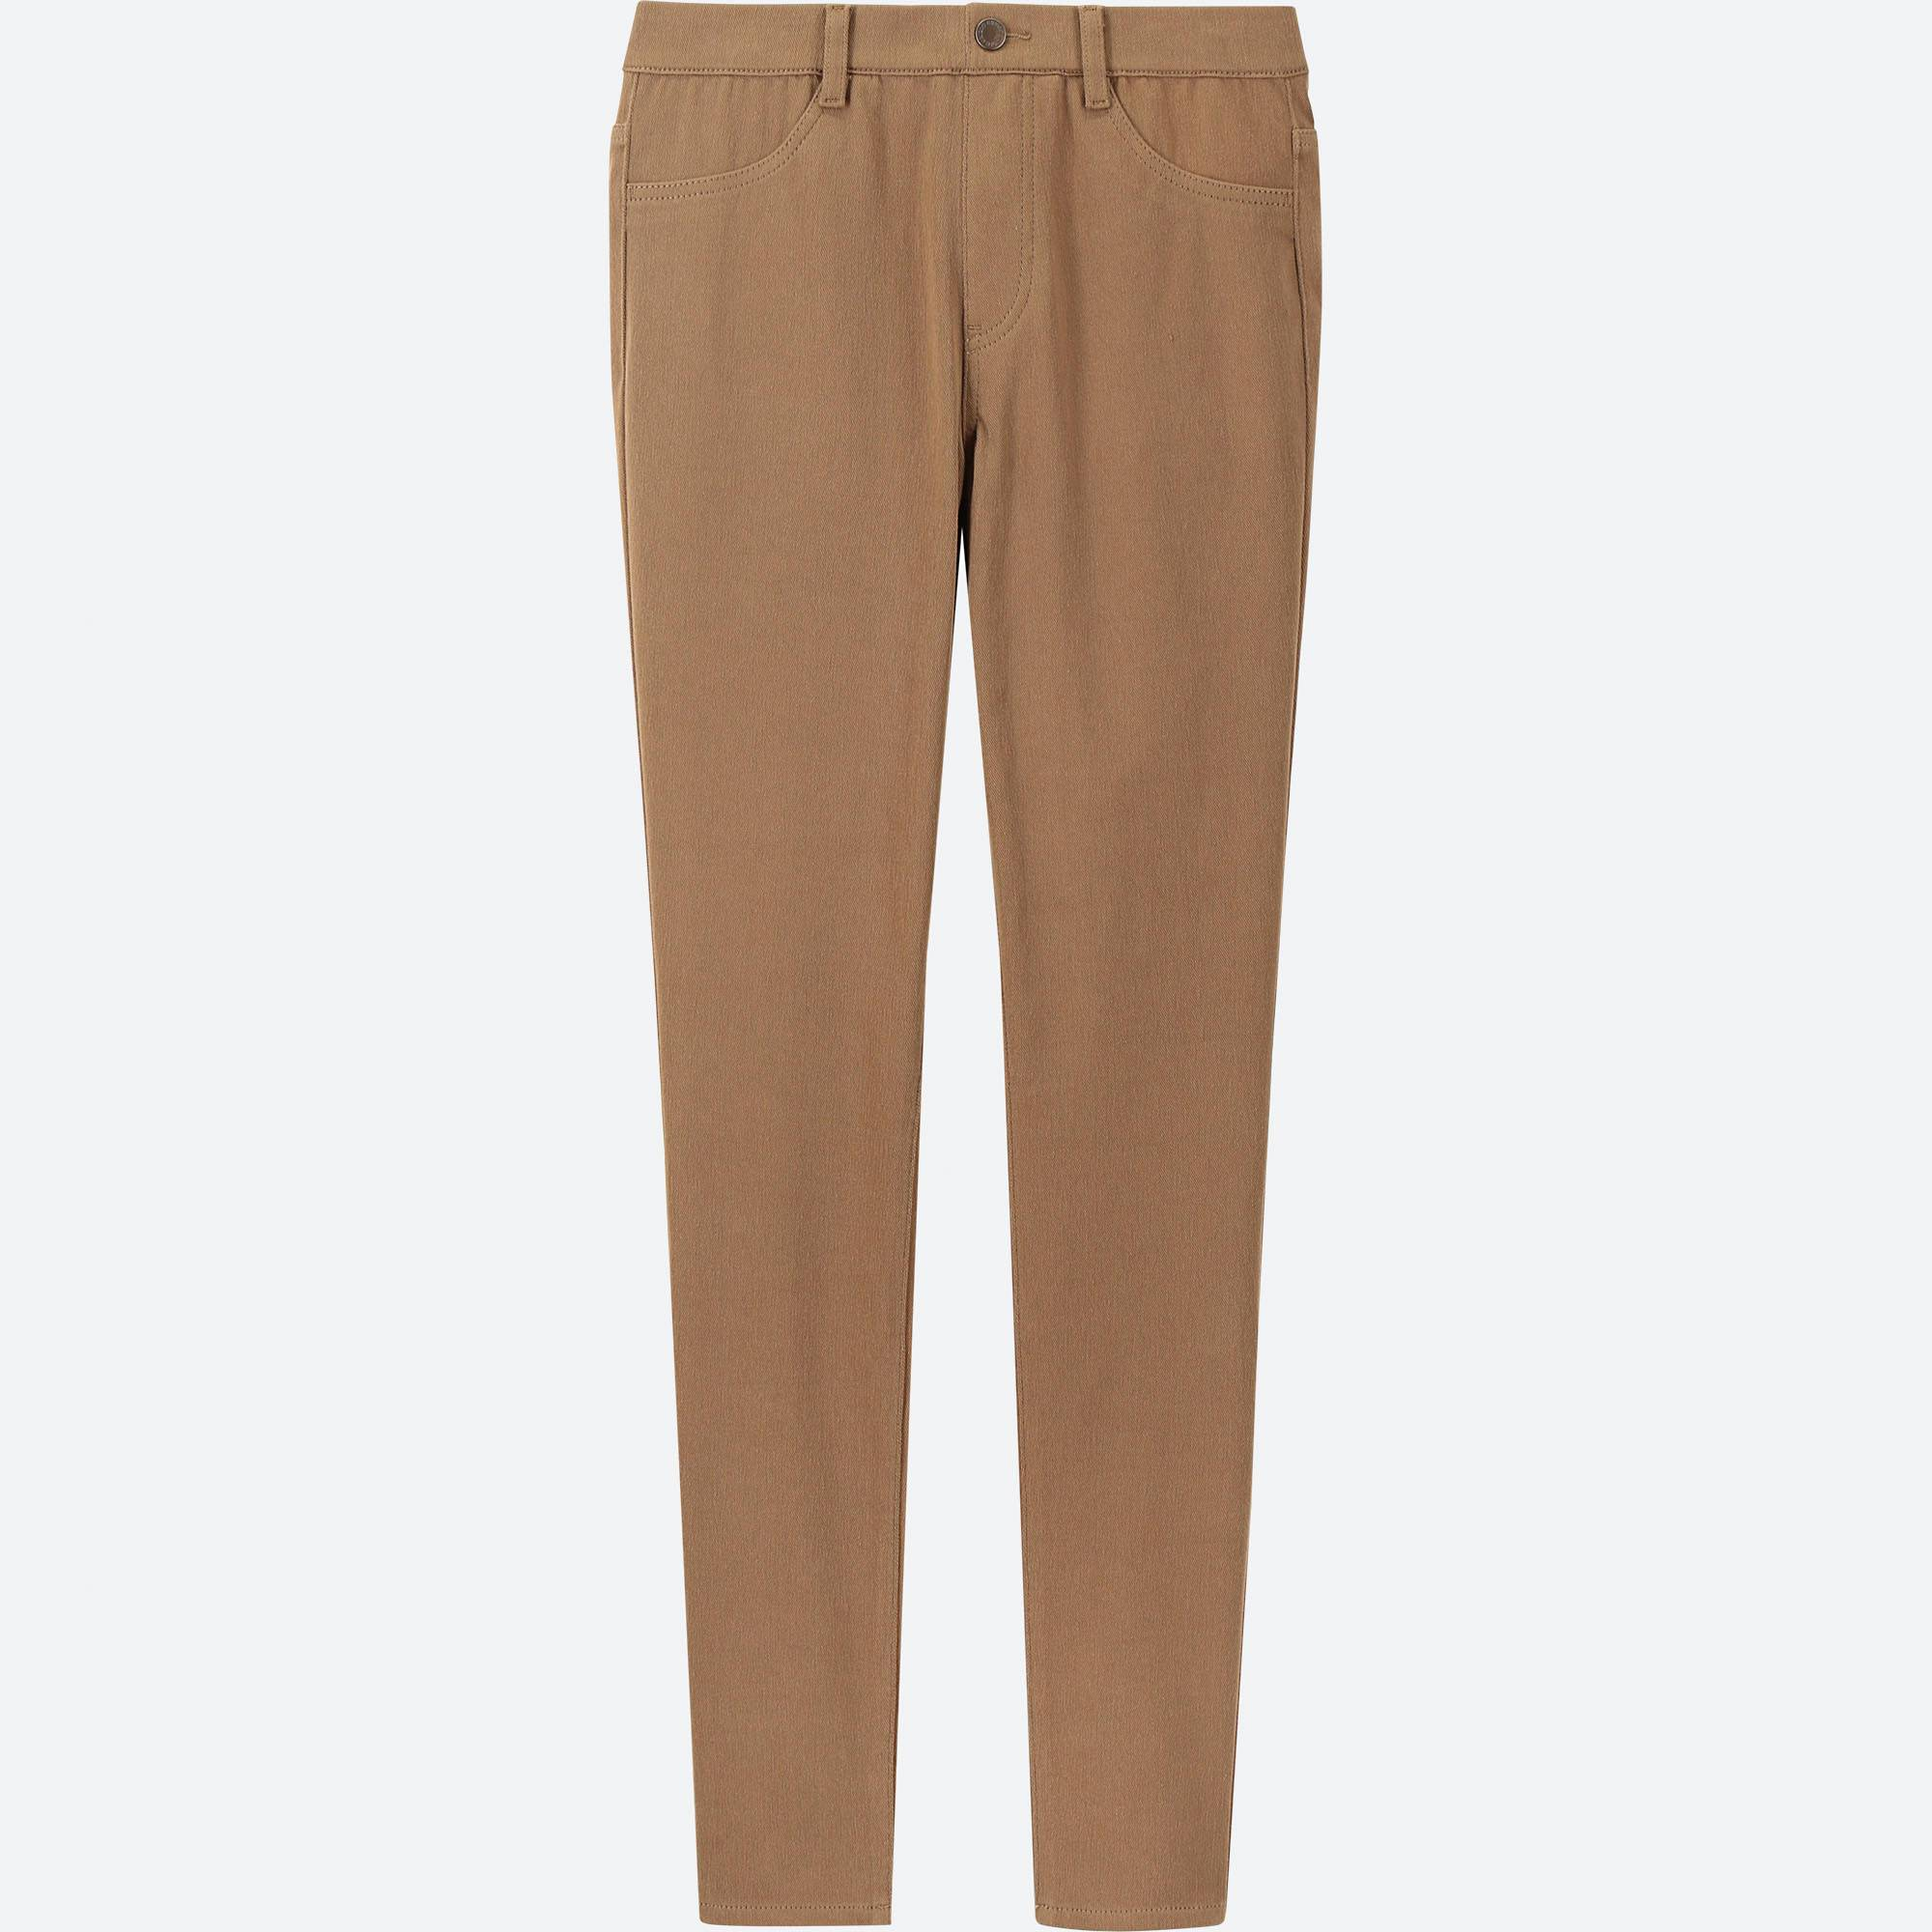 UNIQLO / Quần legging women leggings pants